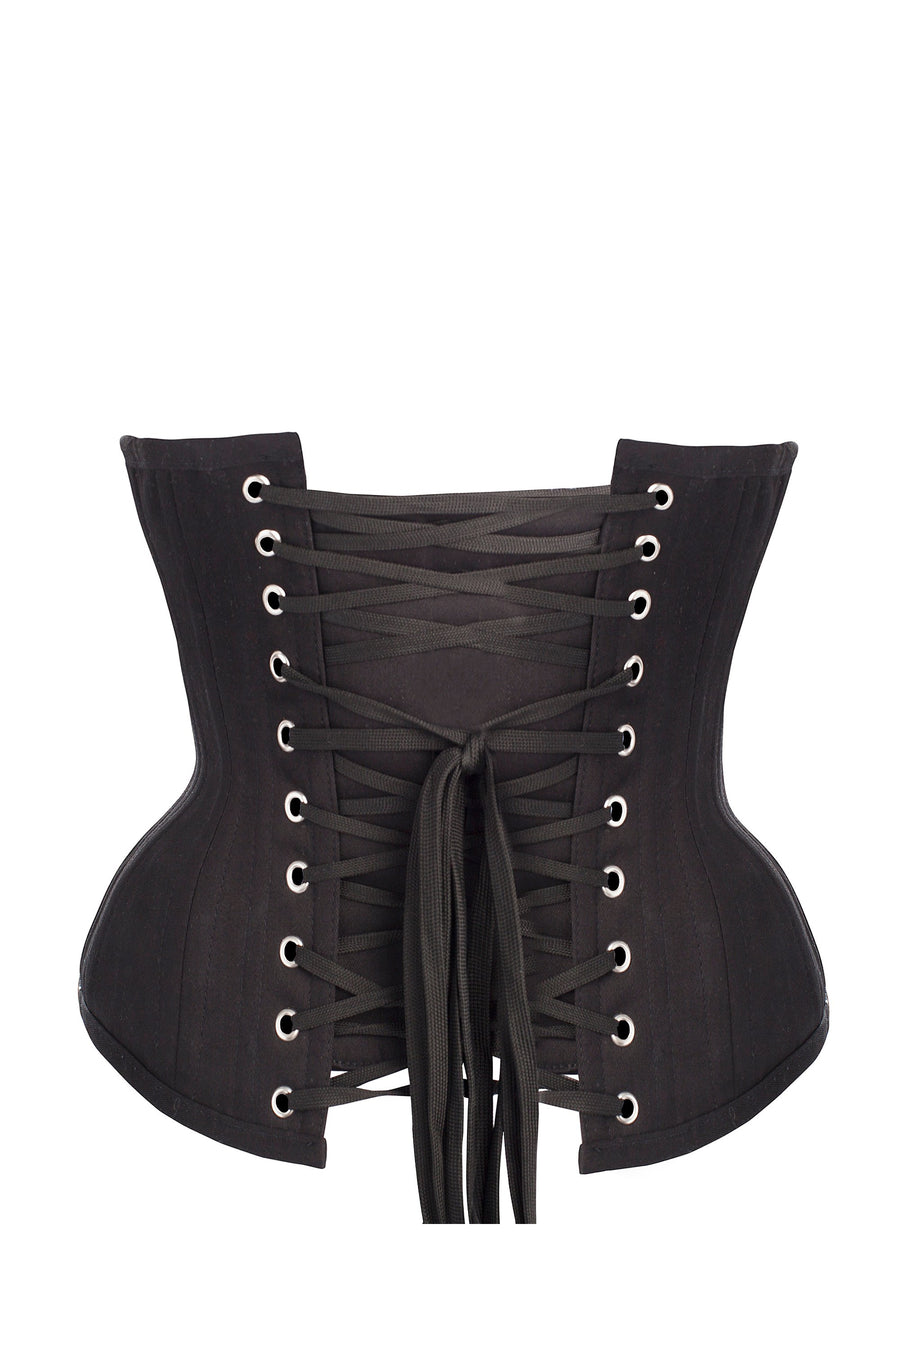 Black Cotton Twill Classic Underbust Waist Trainer With Hip Gores